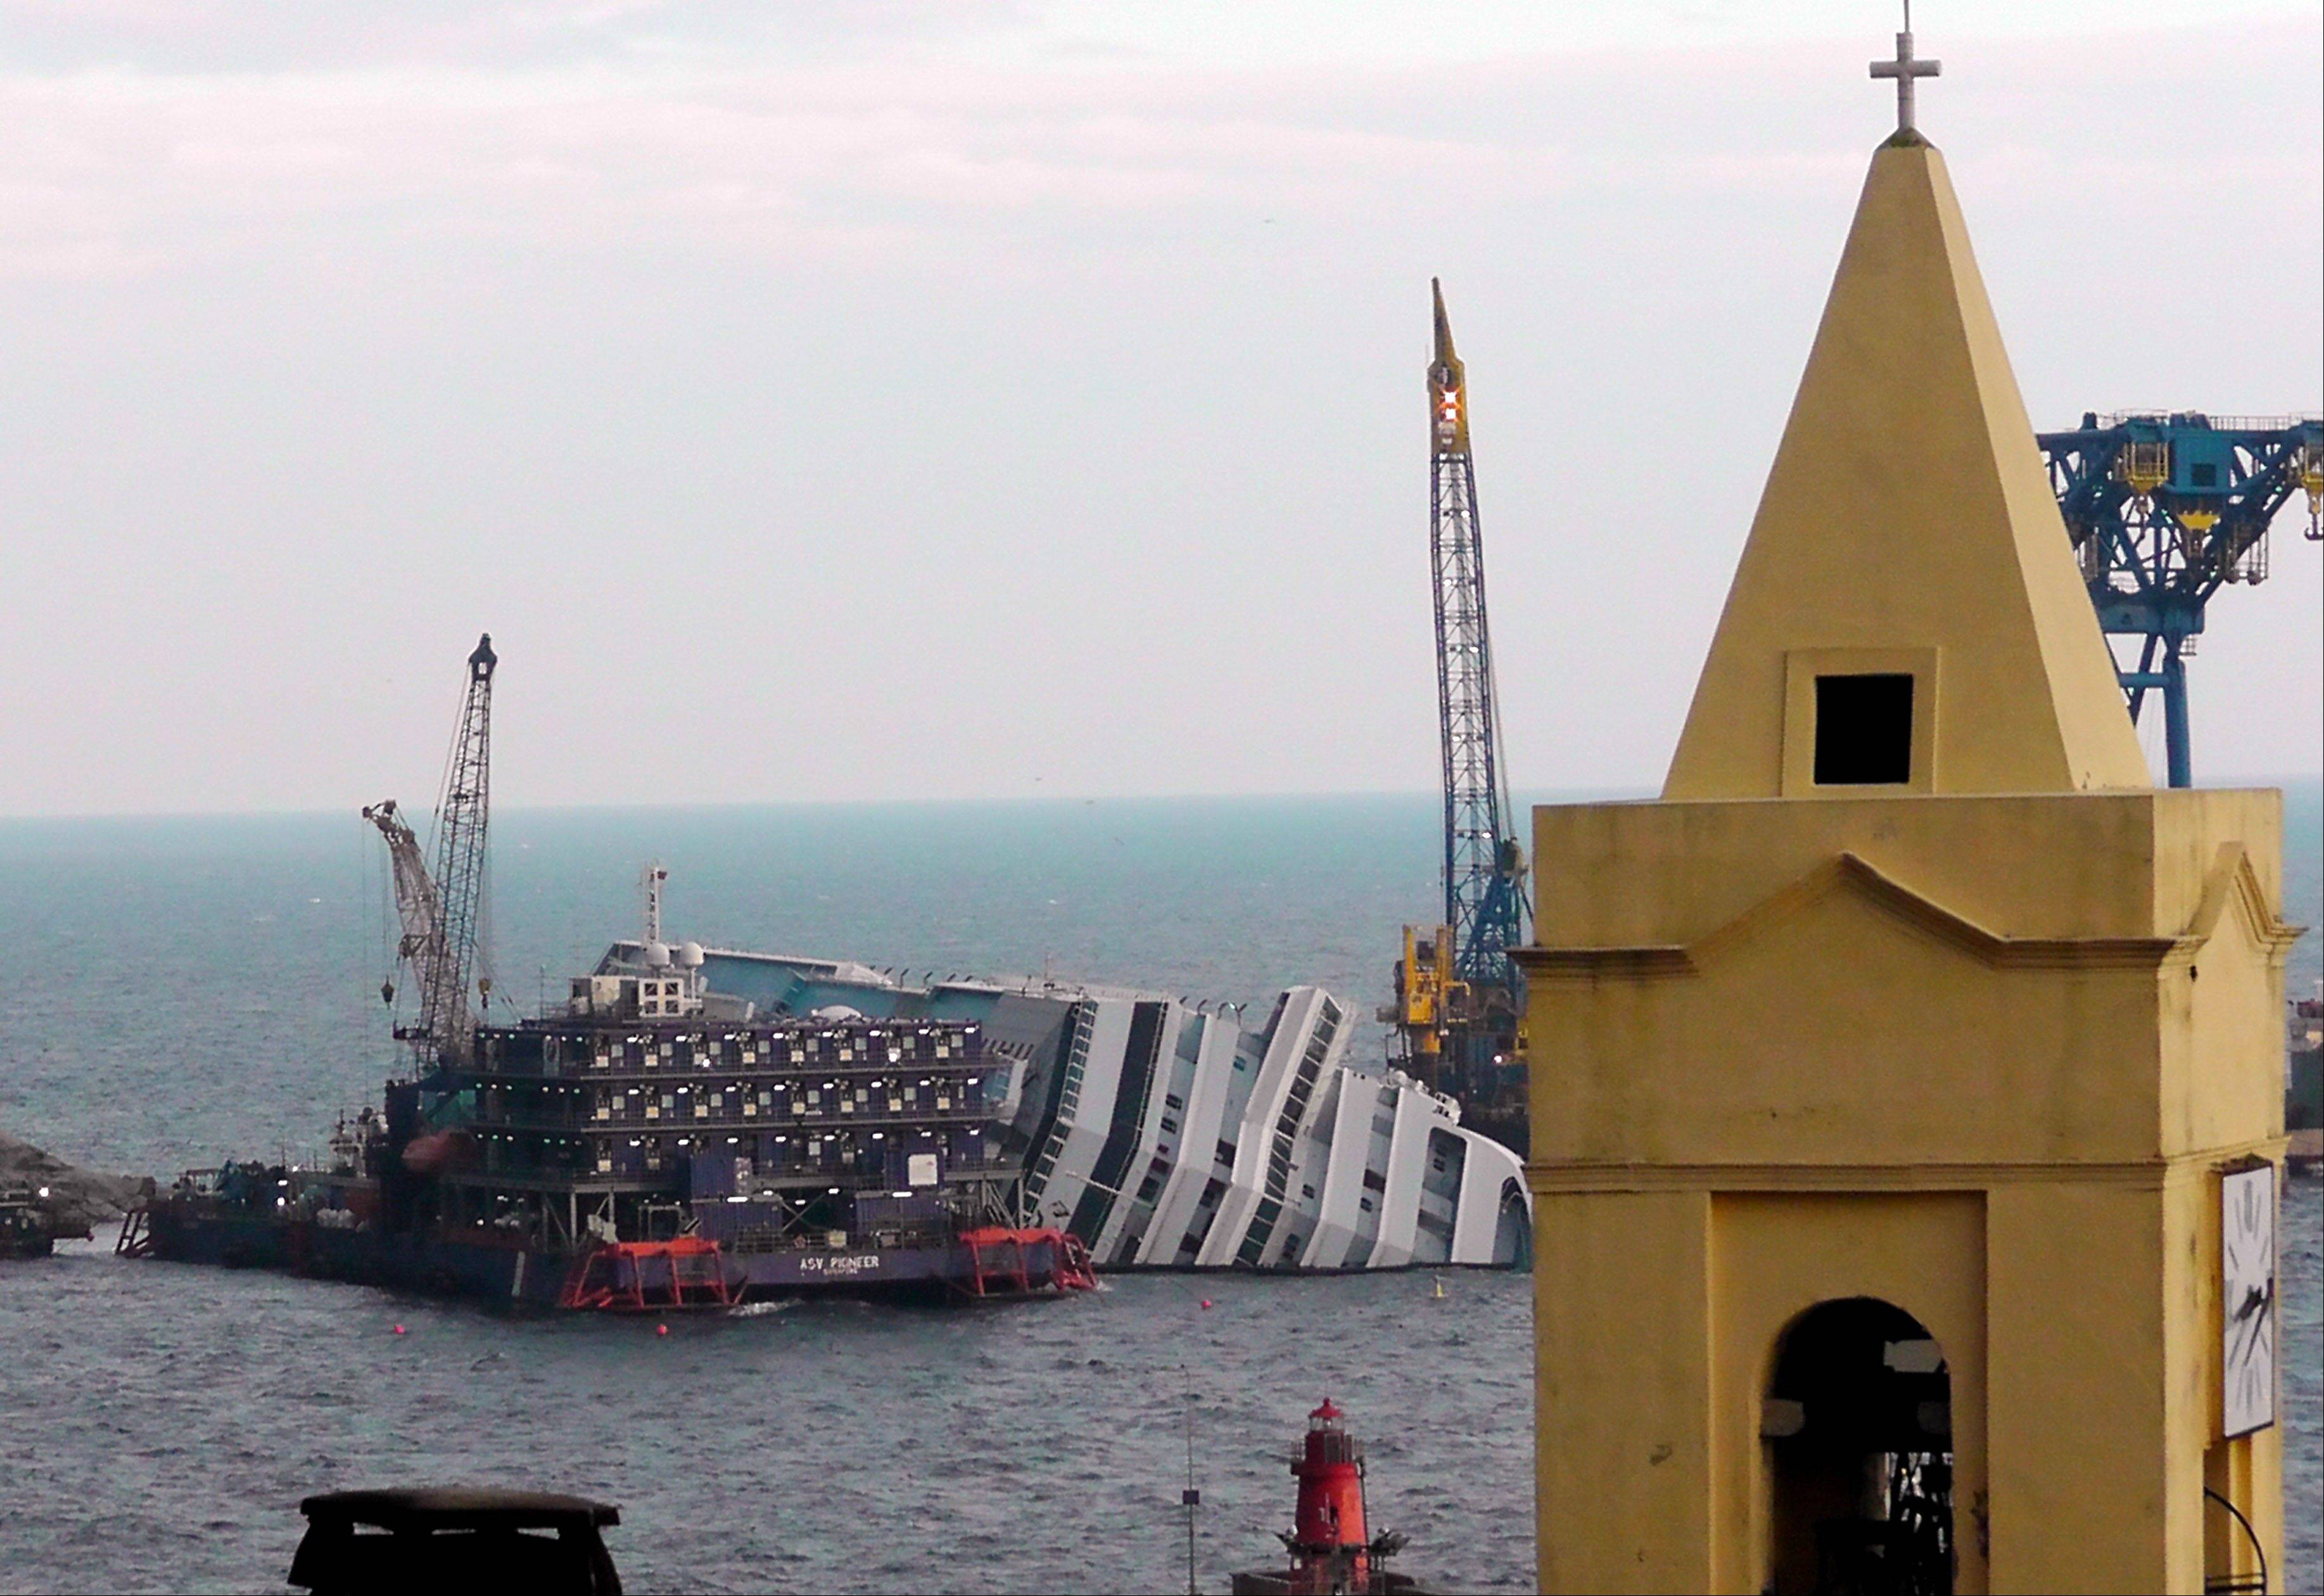 The cruise ship Costa Concordia, leaning on its side, is framed by a church bell tower in the Tuscan island of Giglio, Italy, Friday, Jan. 11, 2013. Passengers who survived the terrifying grounding and capsizing of the Costa Concordia off Tuscany have come in for a rude shock as they mark the first anniversary of the disaster on Sunday. Ship owner Costa Crociere SpA sent several passengers a letter telling them they weren't welcome at the official anniversary ceremonies on the island of Giglio where the hulking ship still rests. Costa says the day is focused on the families of the 32 people who died Jan. 13, 2012, not the 4,200 passengers and crew who survived.